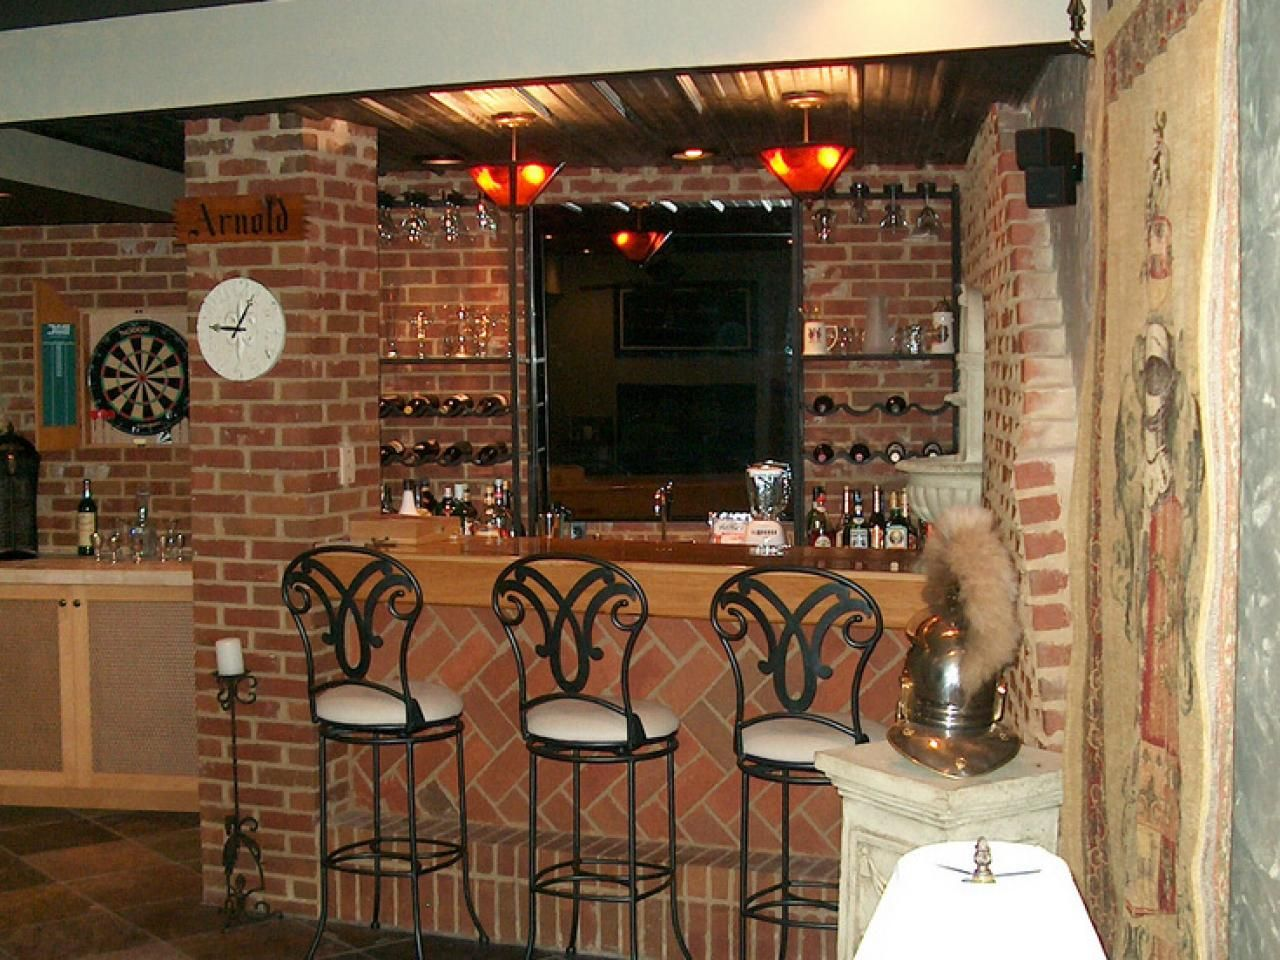 Home Basement Bars Sports Bar Design Ideas Choice Image Many Ideas To Decorate Your